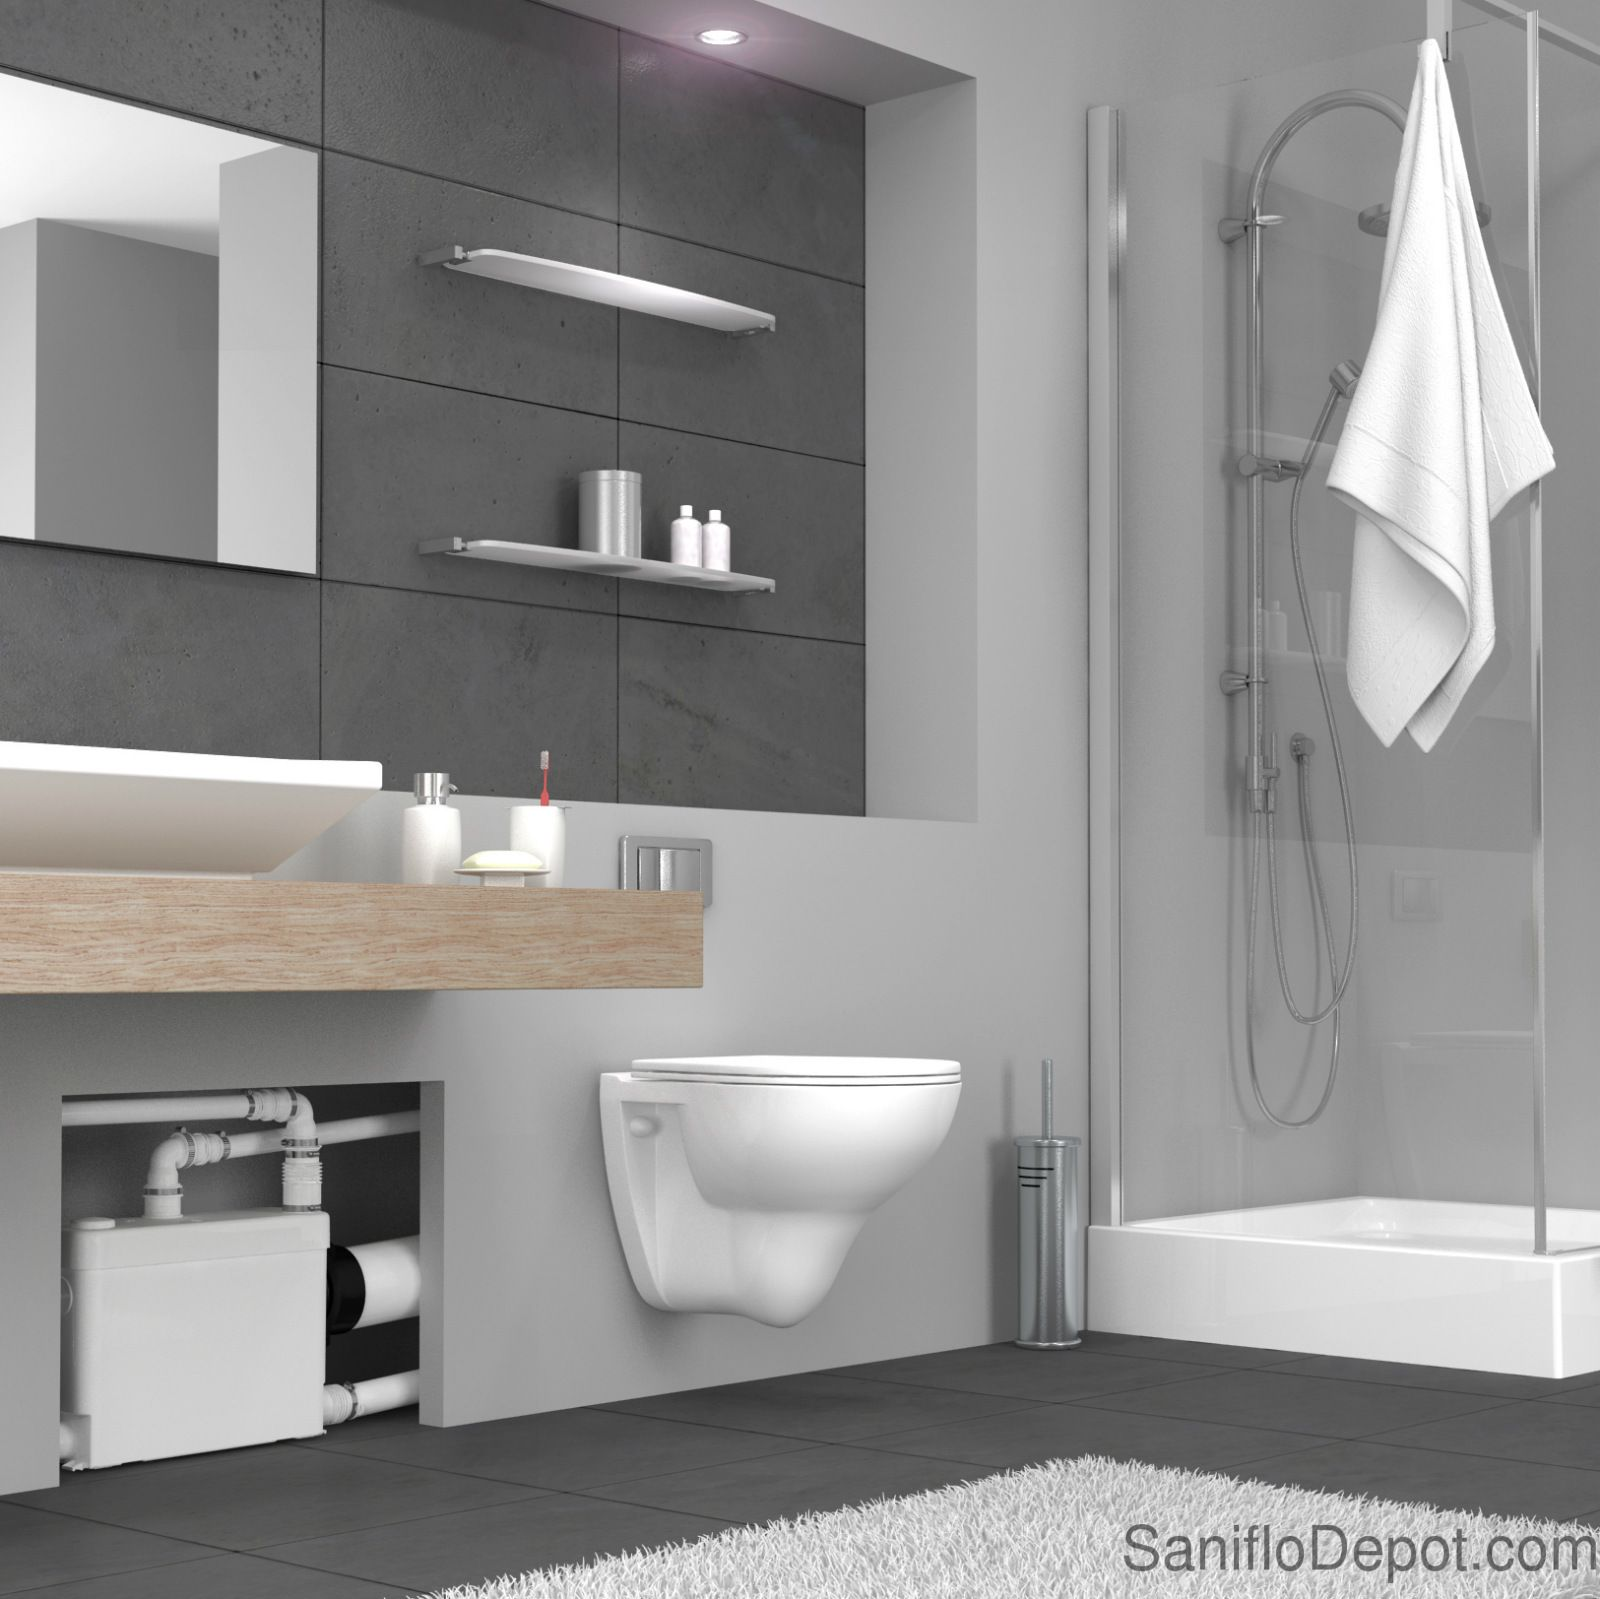 Saniflo Sanipack Macerating Upflush Toilet For The